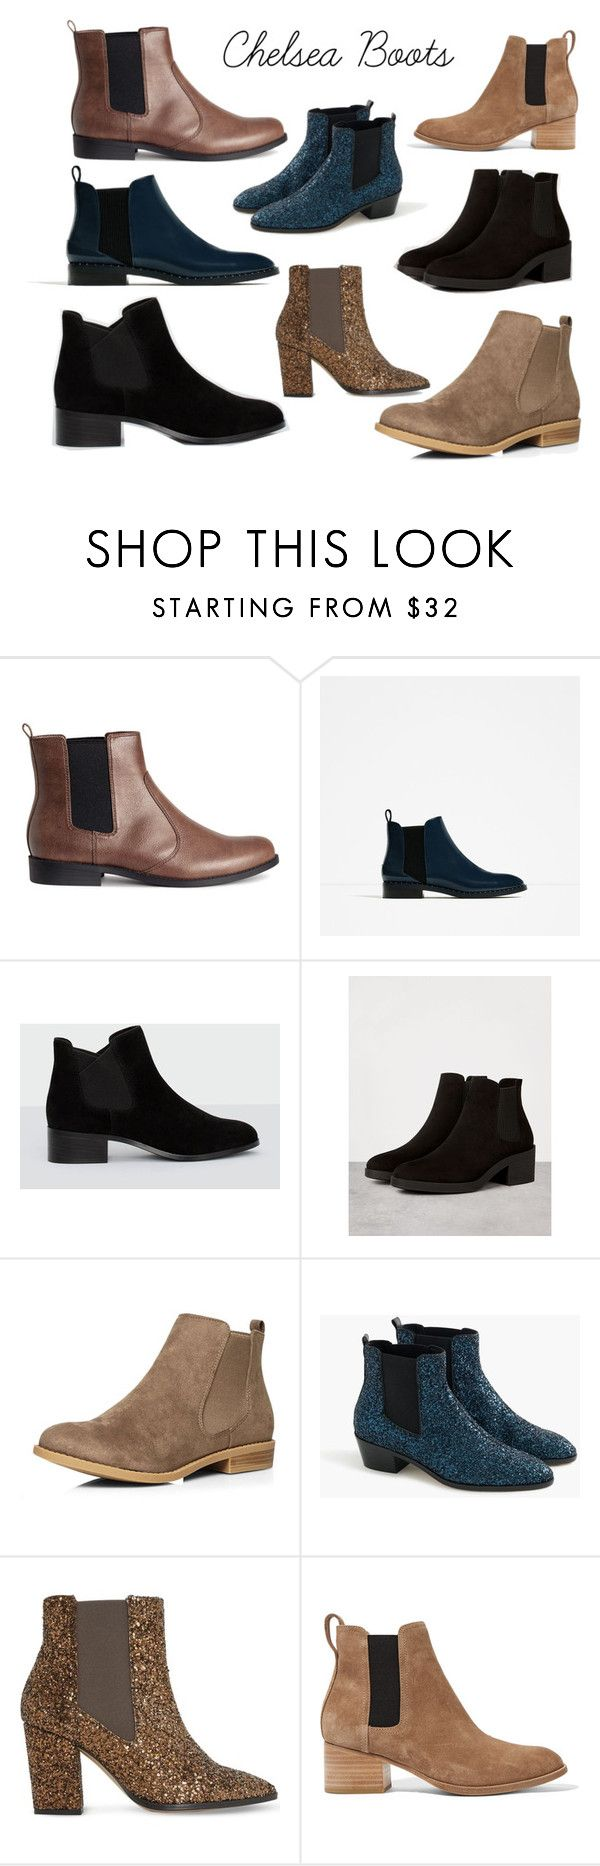 """Chelsea Boots #2"" by bloguerosa on Polyvore featuring H&M, Bershka, Dorothy Perkins, J.Crew, Dune and rag & bone"